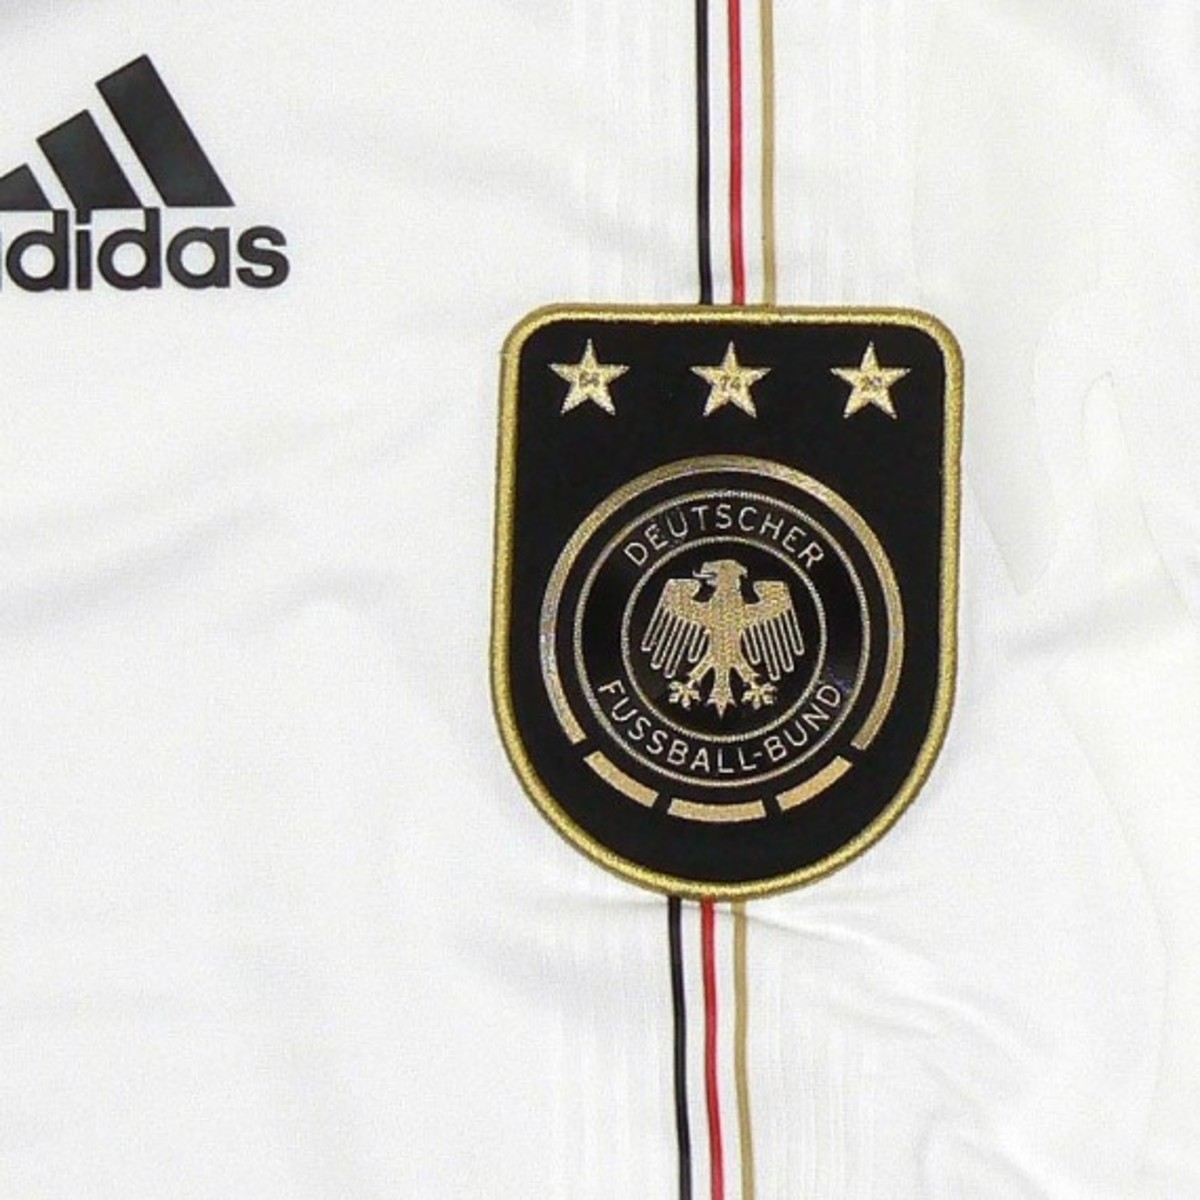 adidas-world-cup-celebration-pack-germany-19